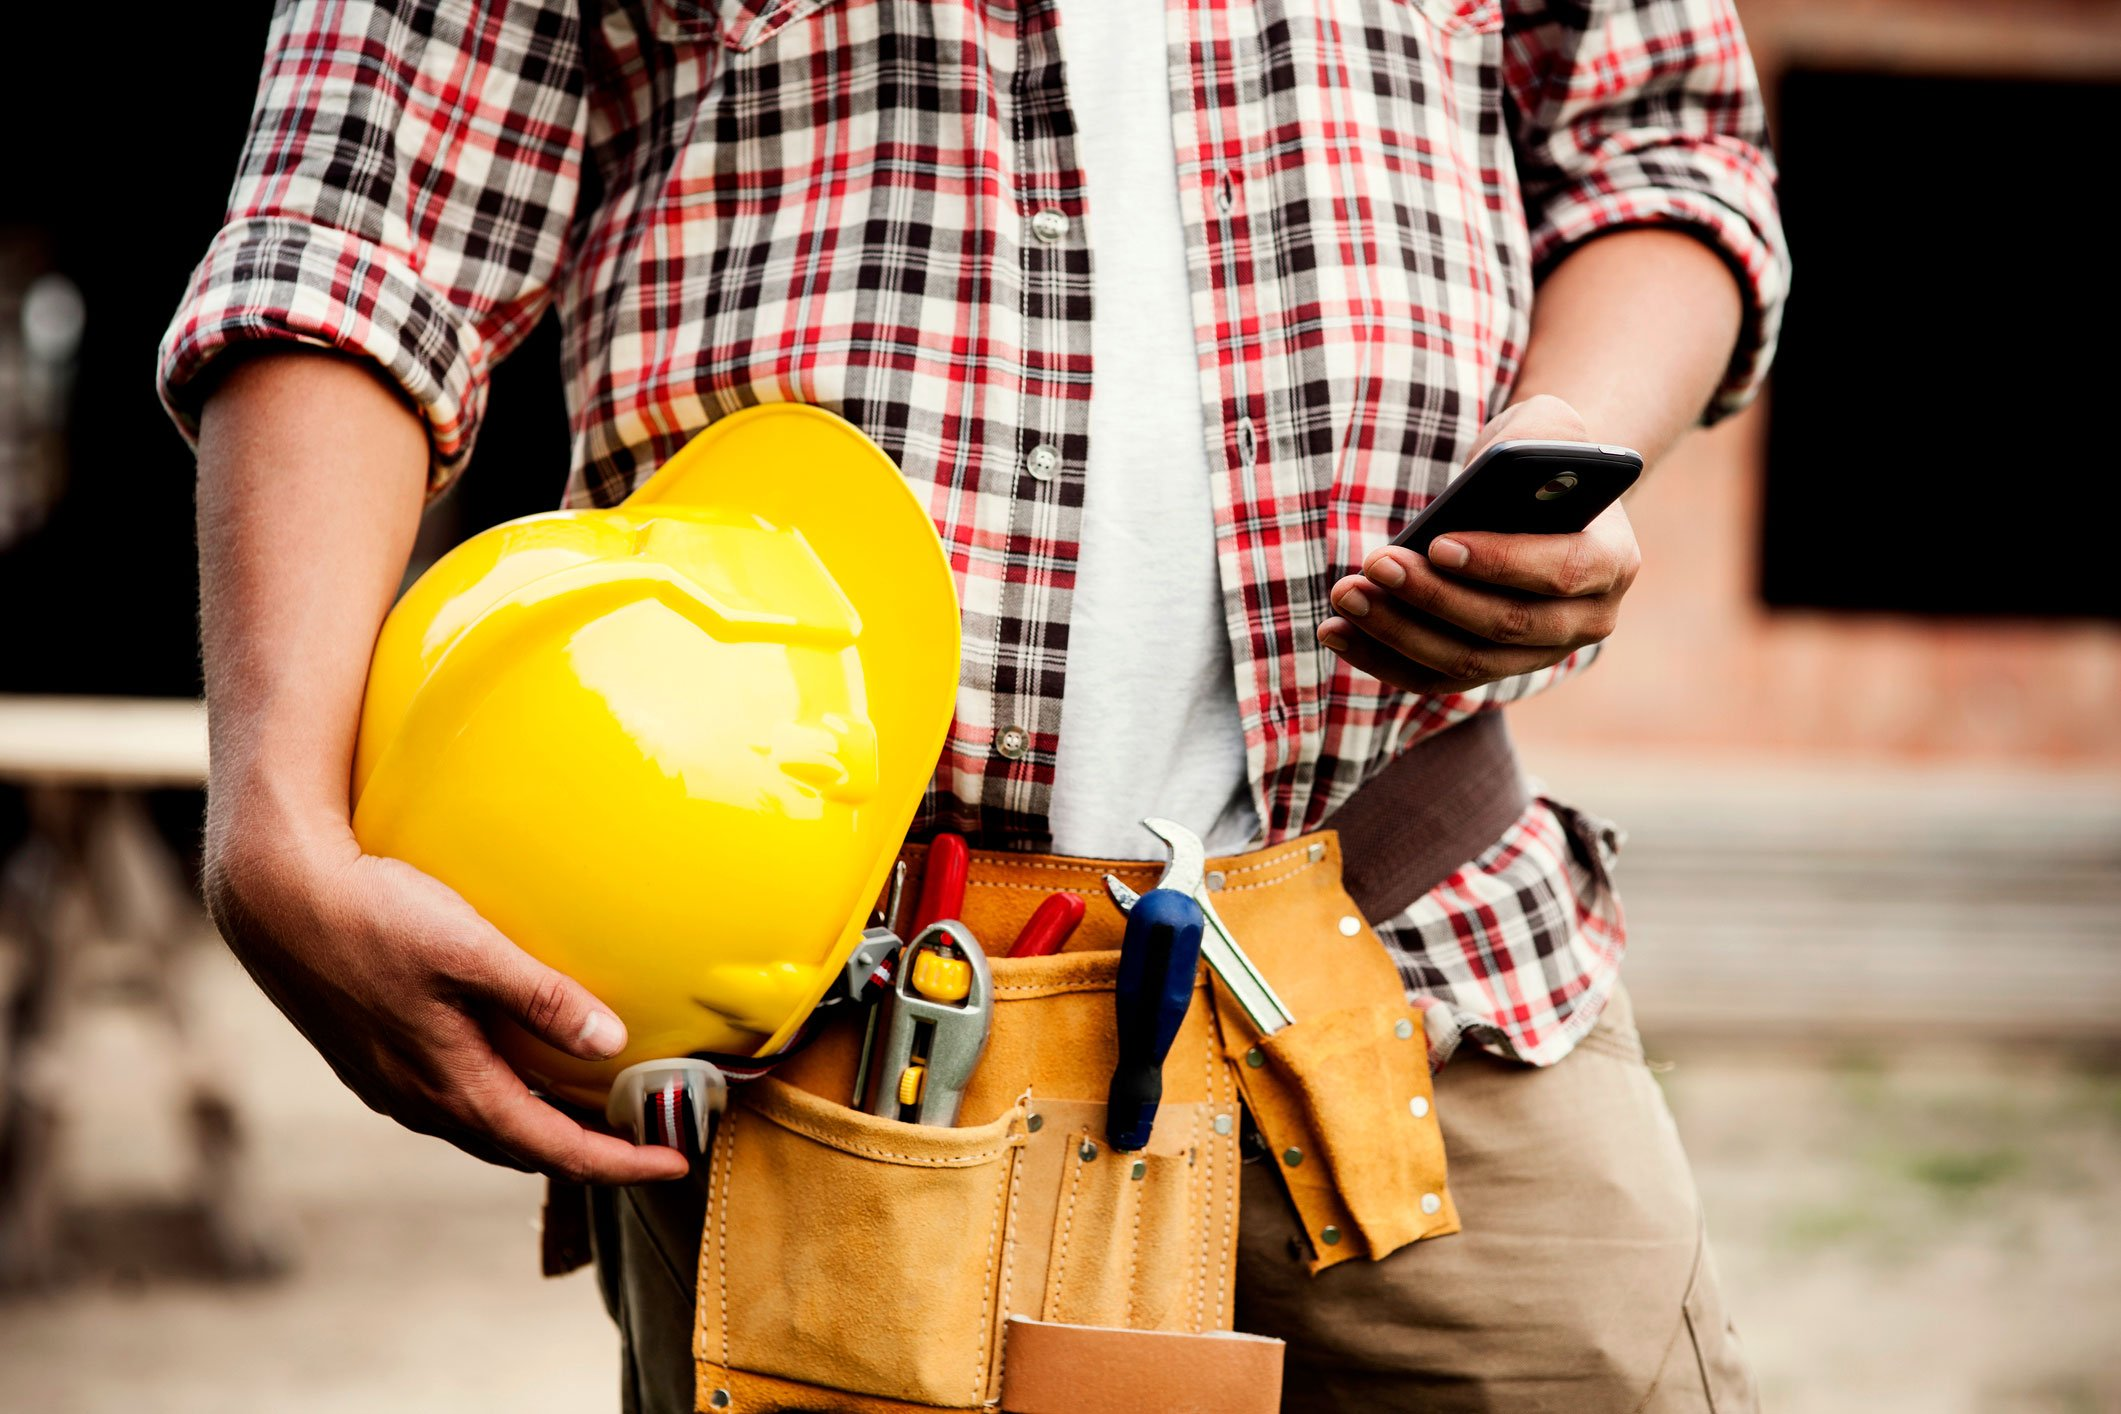 A contractor views smartphone while holding yellow hard hat in right hand